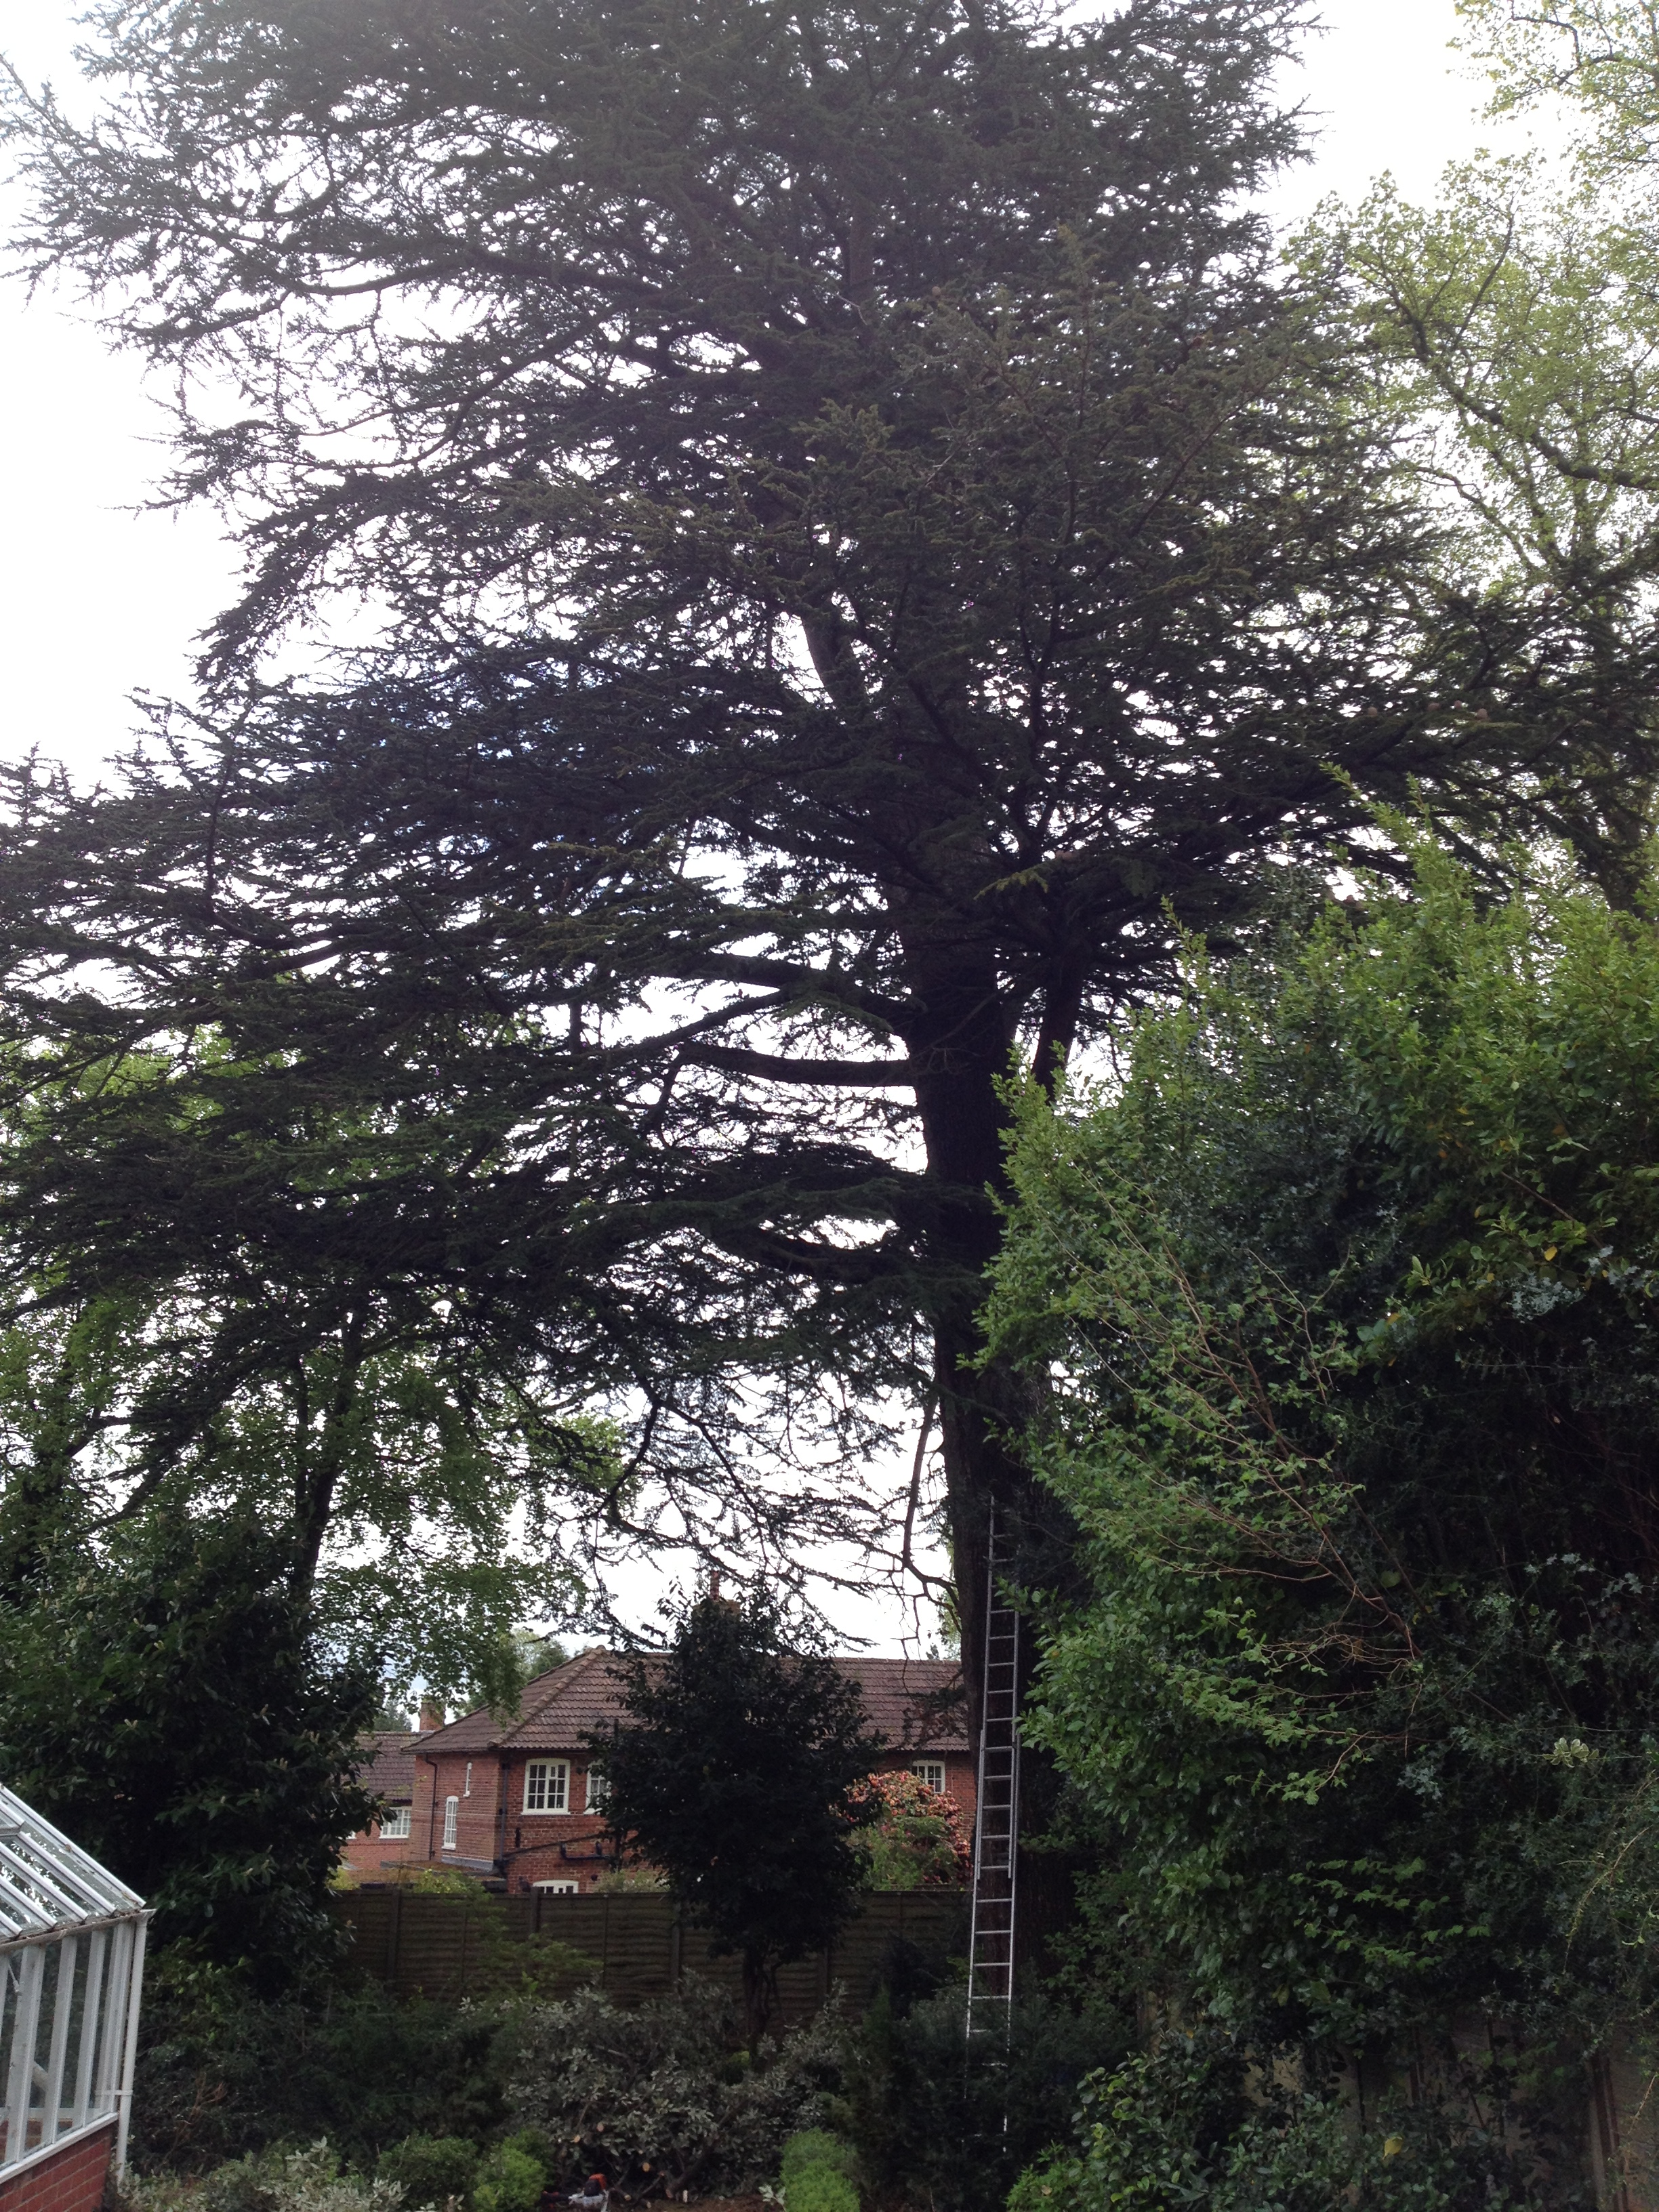 Crown lift - Large Cedar Tree - Portswood Southampton